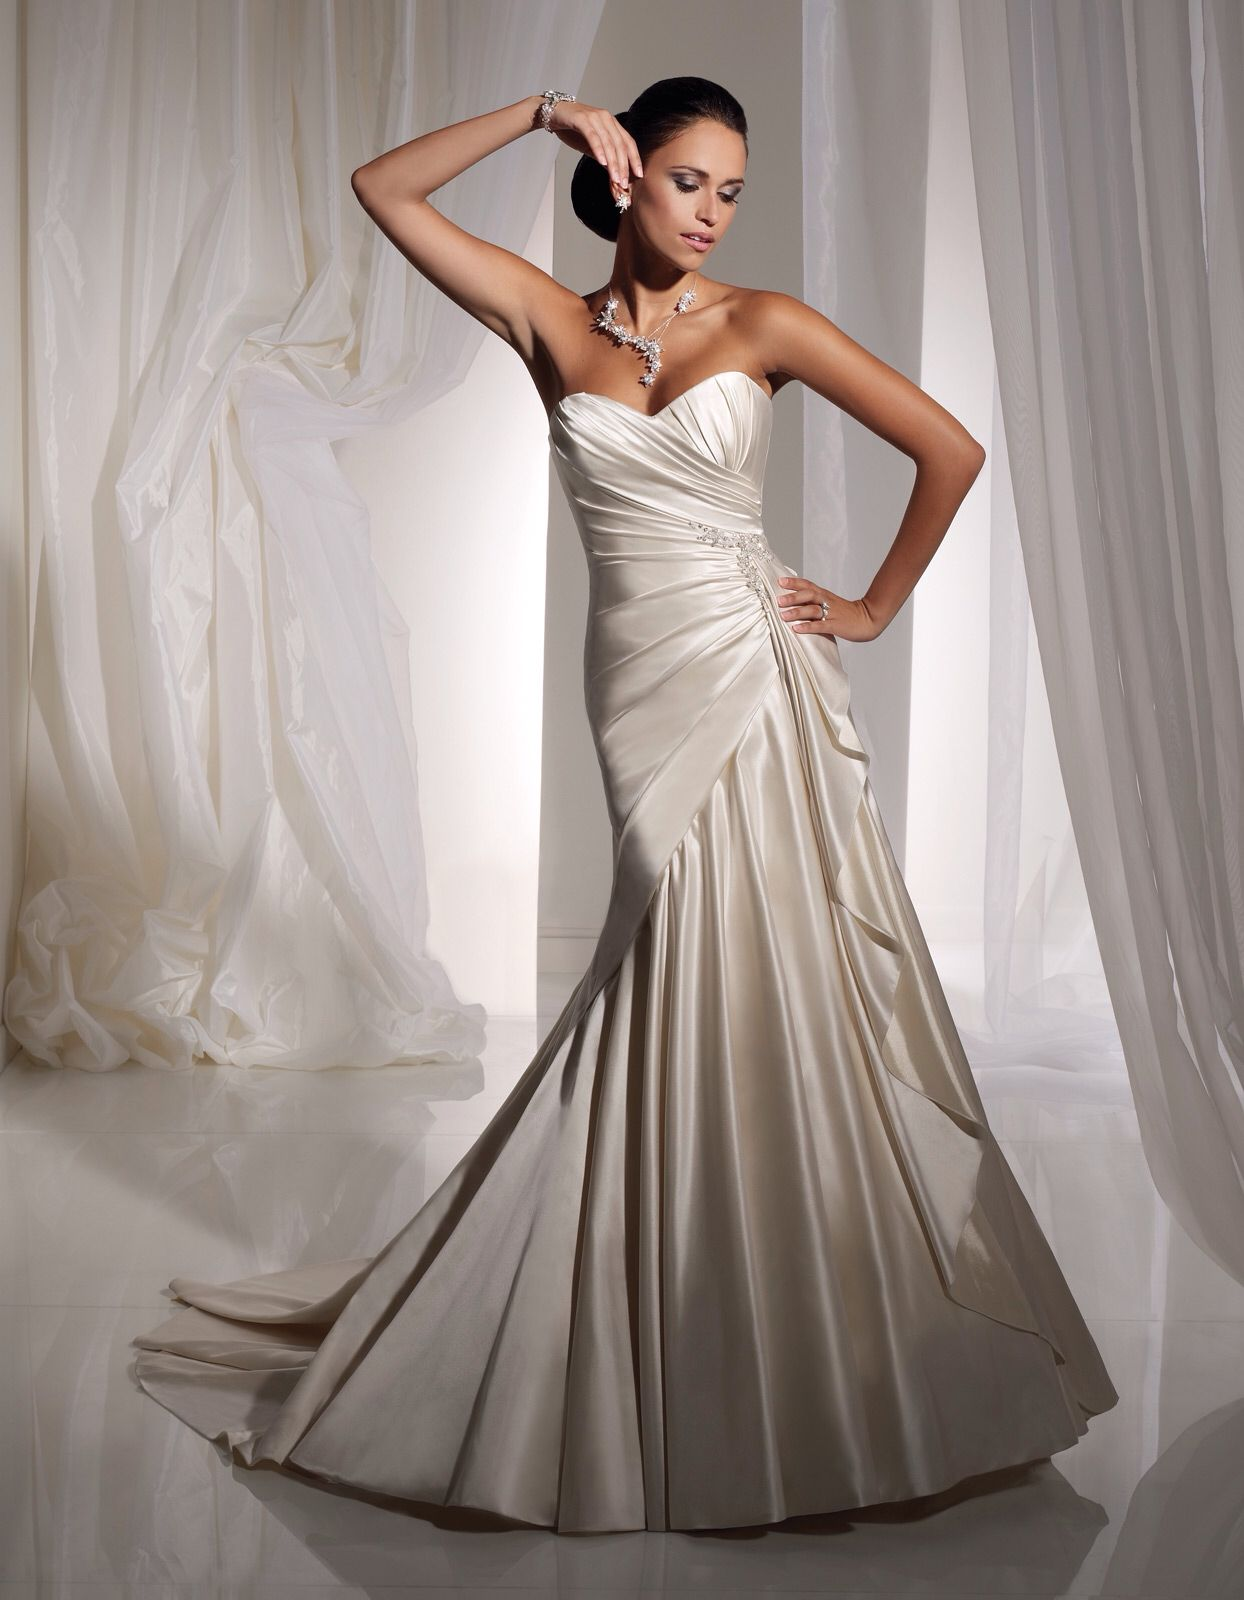 Hobnob bridal our bridal gowns pinterest bridal gowns and wedding